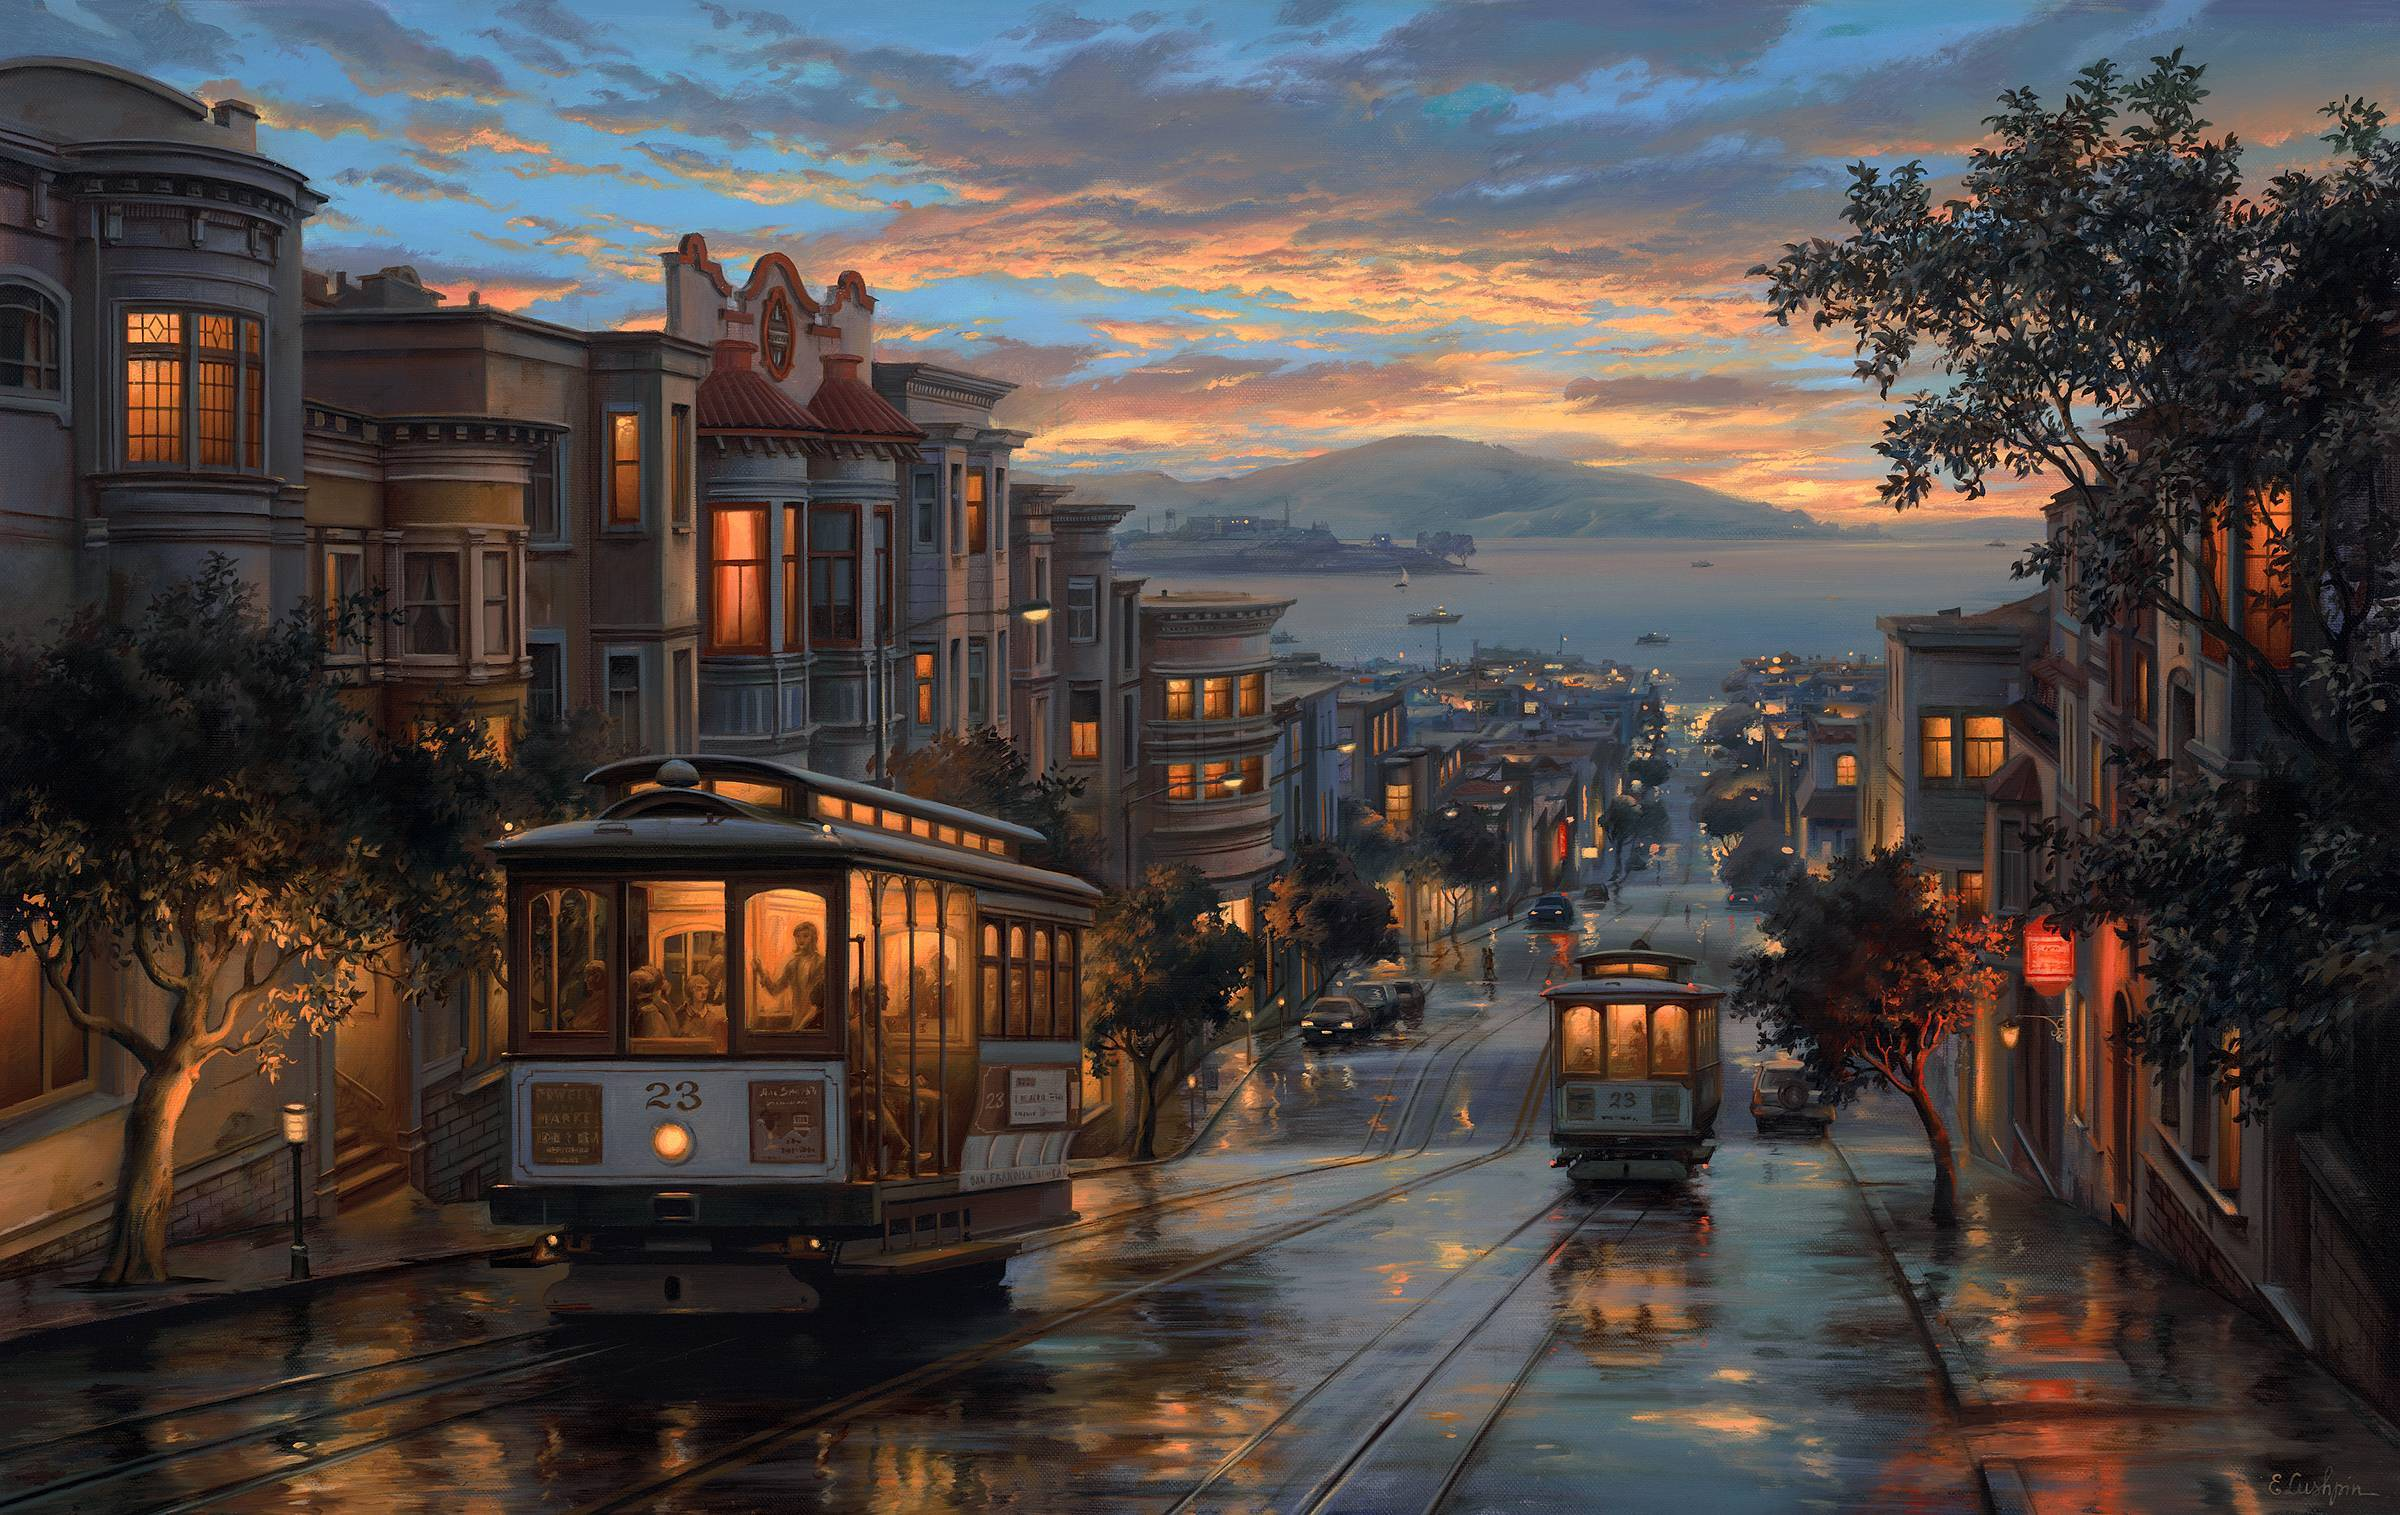 Streetcars in San Francisco on a Rainy Night Full HD Wallpaper and .